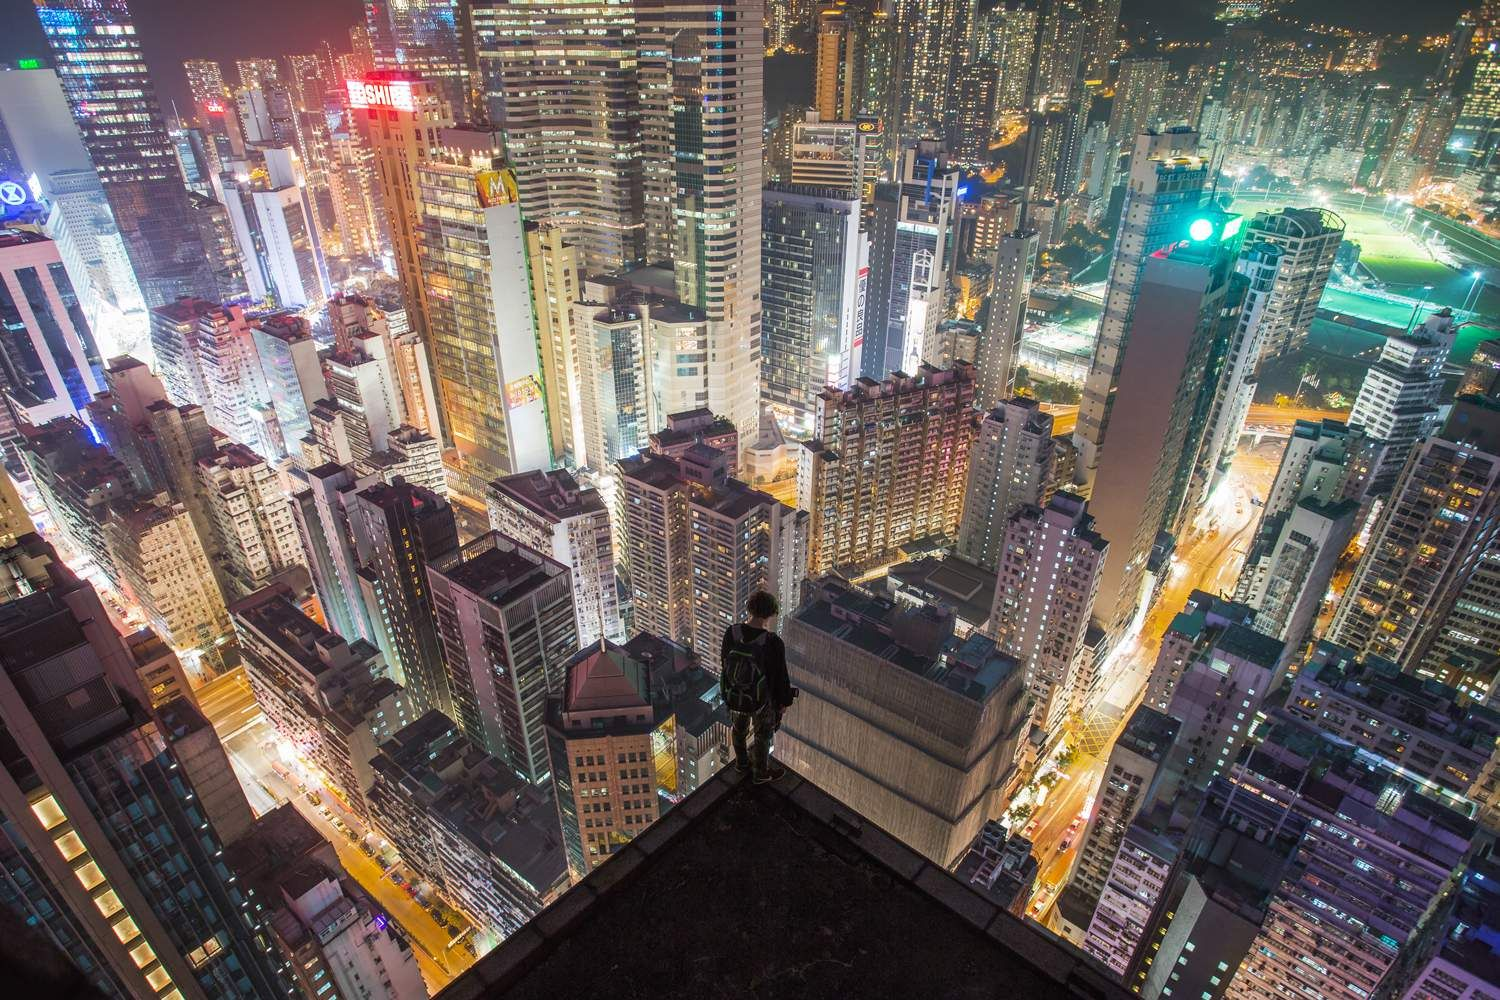 The Best Daredevil Rooftopping Photos Daredevil Amazing - Daredevil duo climb hong kongs buildings capture like youve never seen